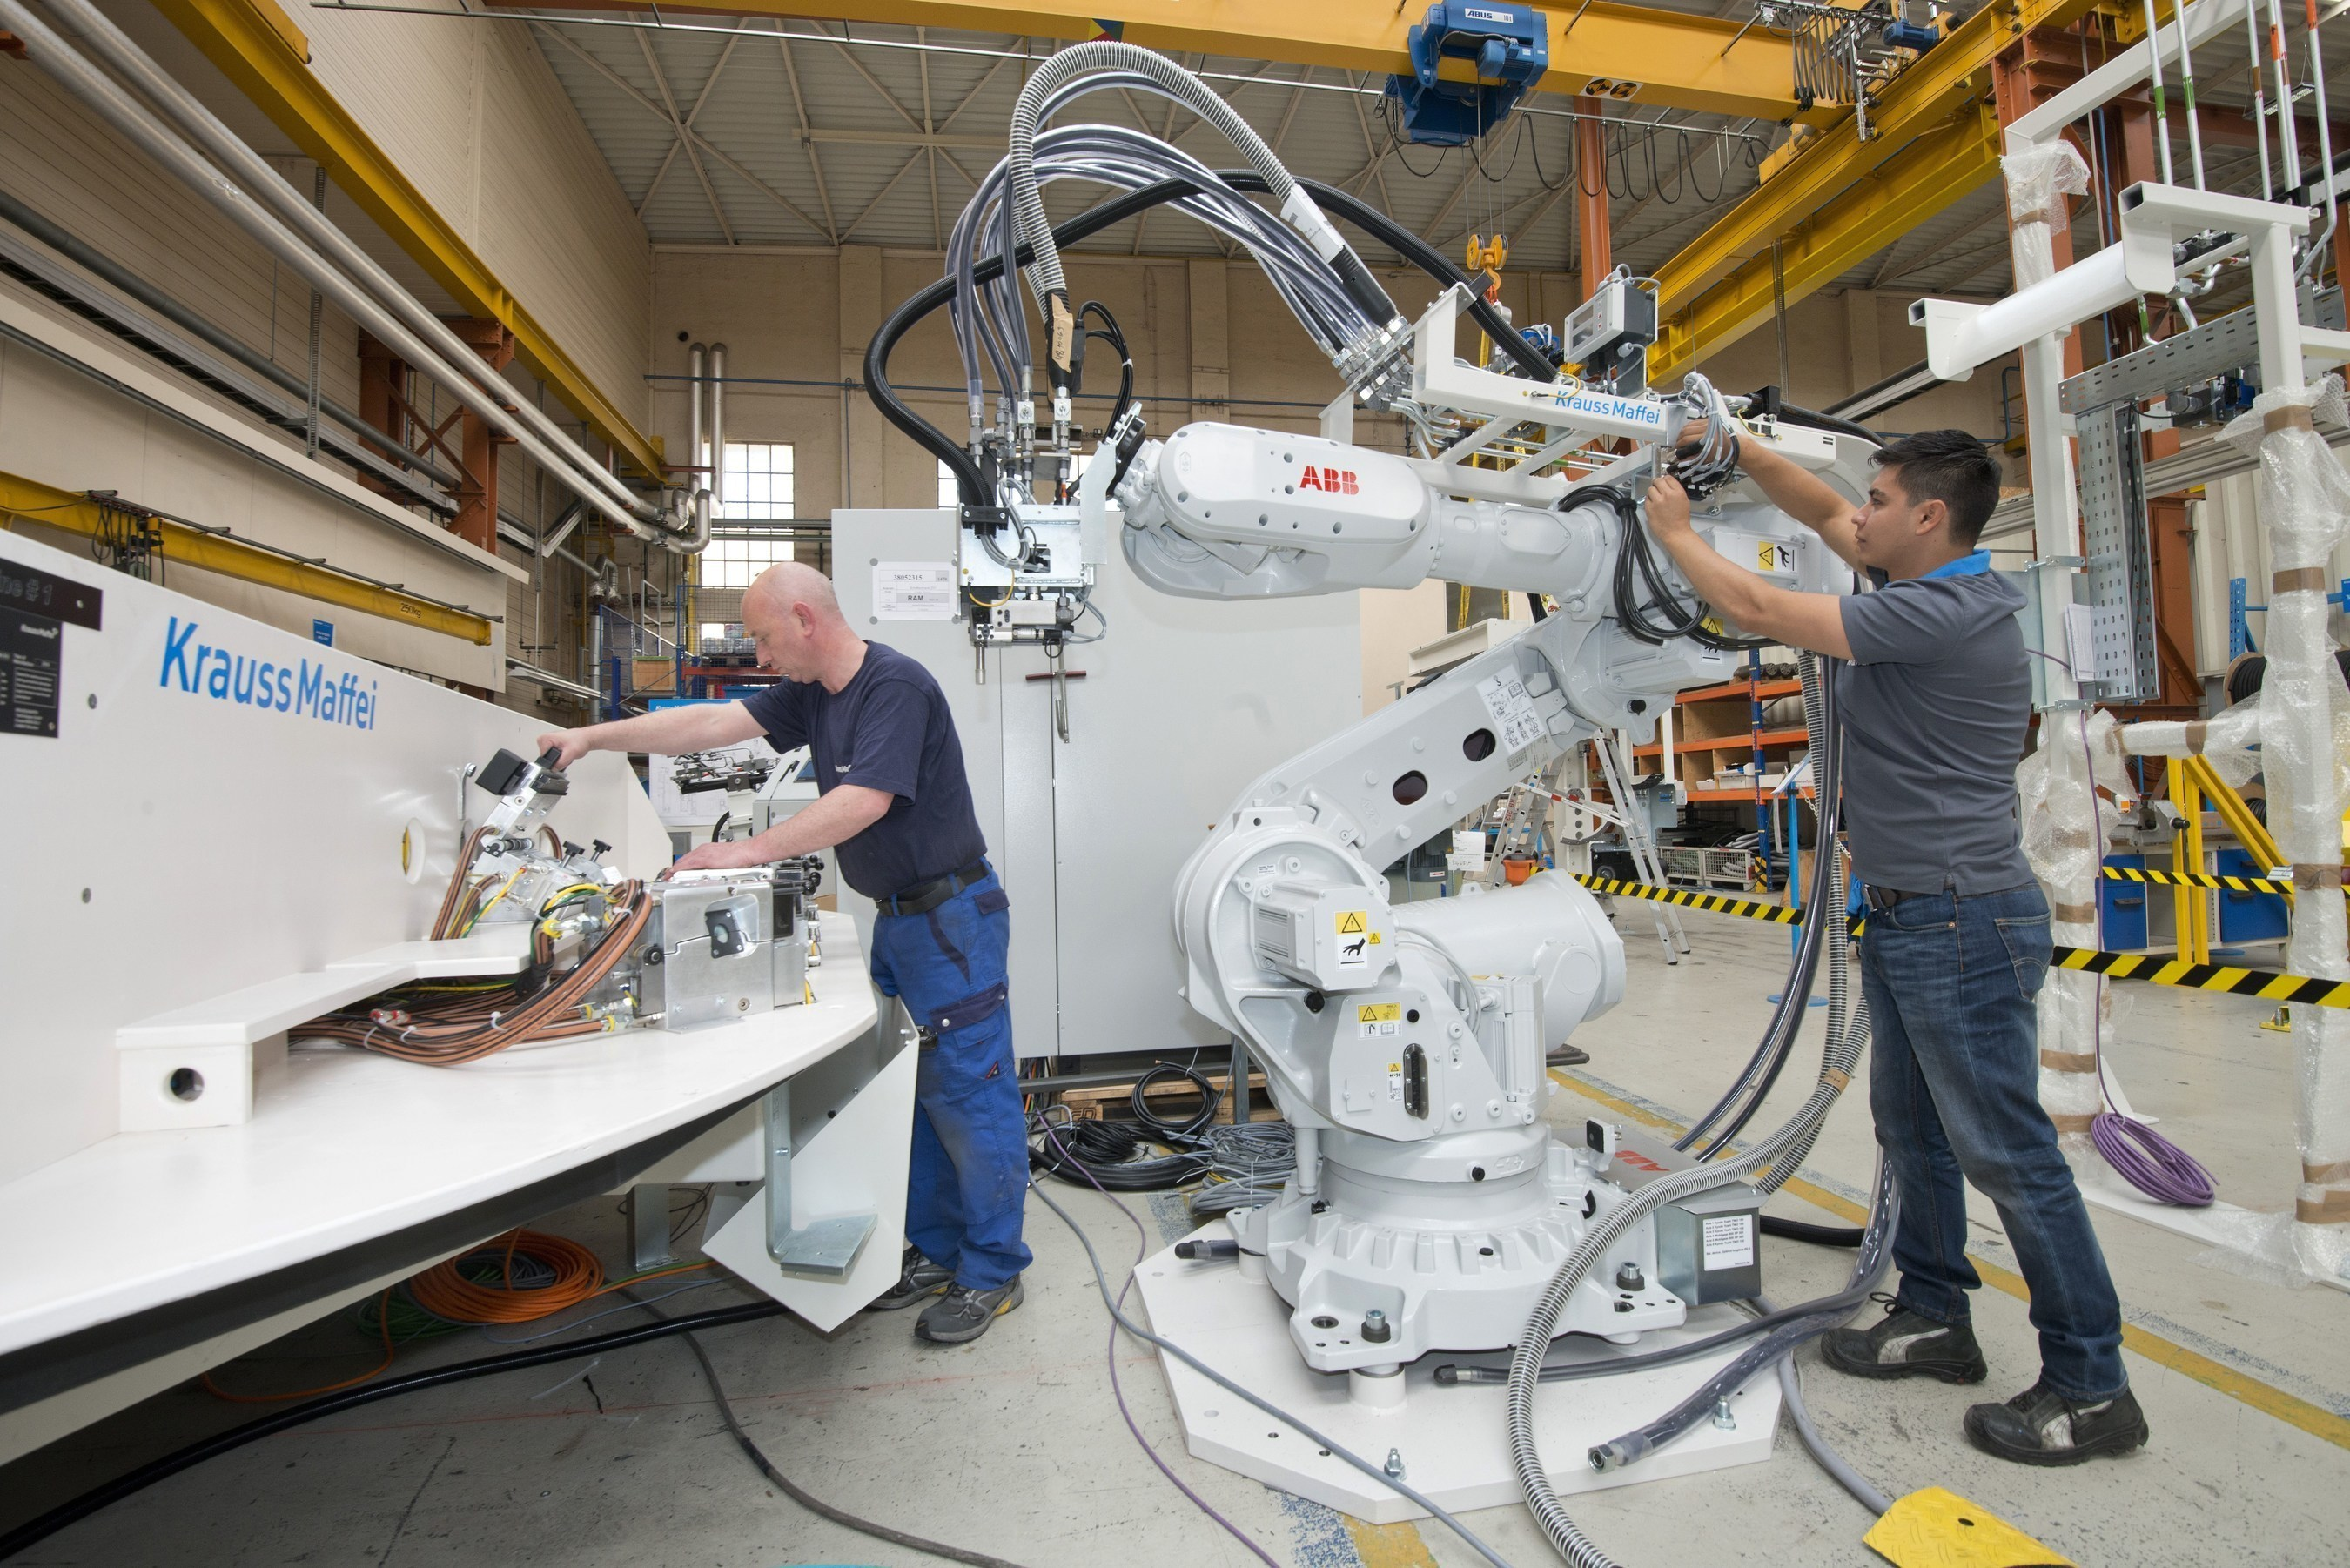 Reaction Process Machinery: Installation of a rotary table to encapsulate cables for a customer in the automotive industry - (c) KraussMaffei Technologies GmbH/Wolfgang Maria Weber (PRNewsFoto/KraussMaffei Technologies GmbH)